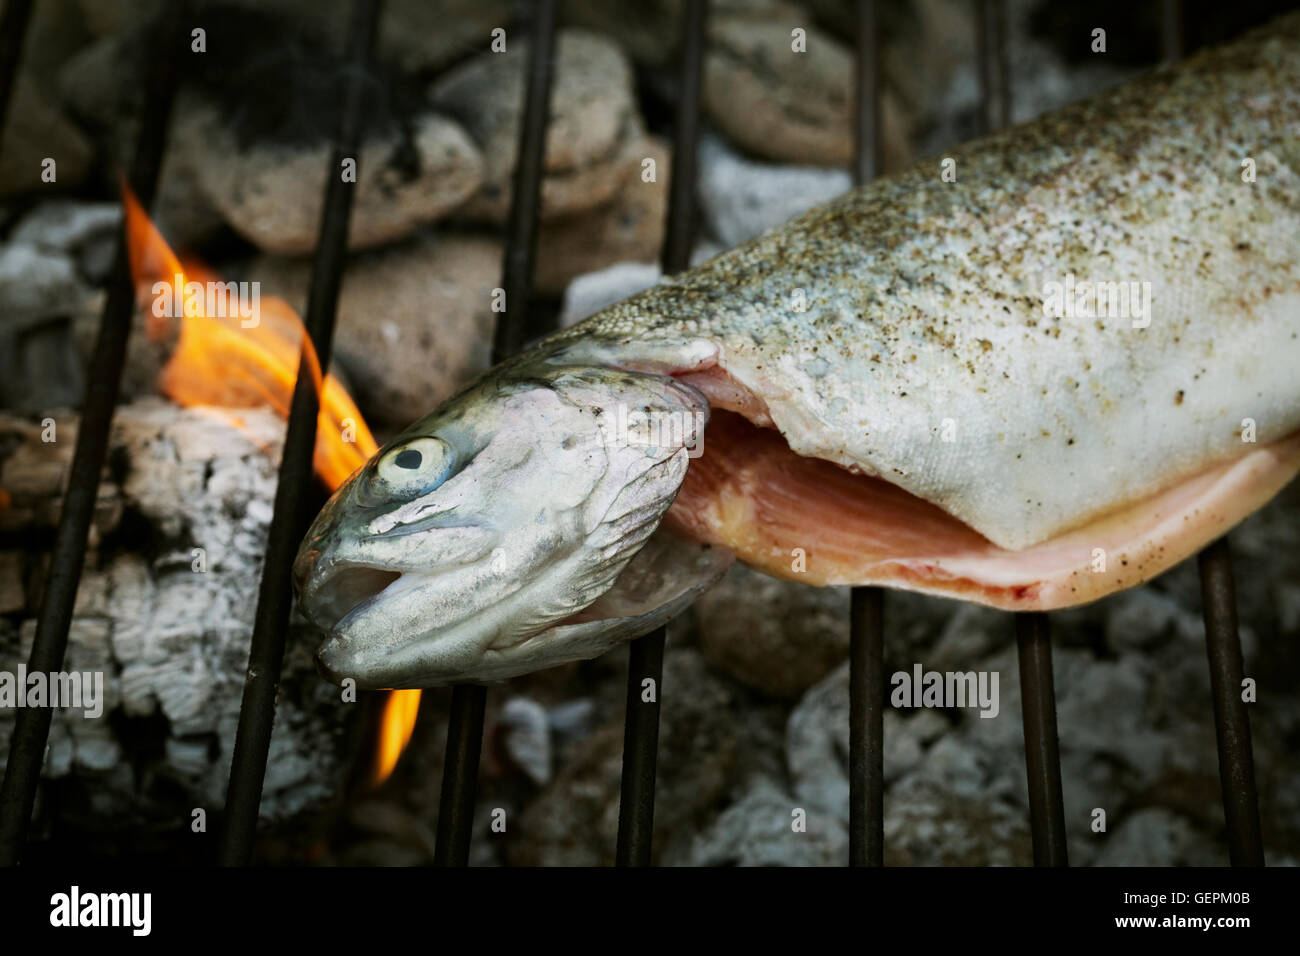 High angle view of a grilled fish on a barbecue. - Stock Image